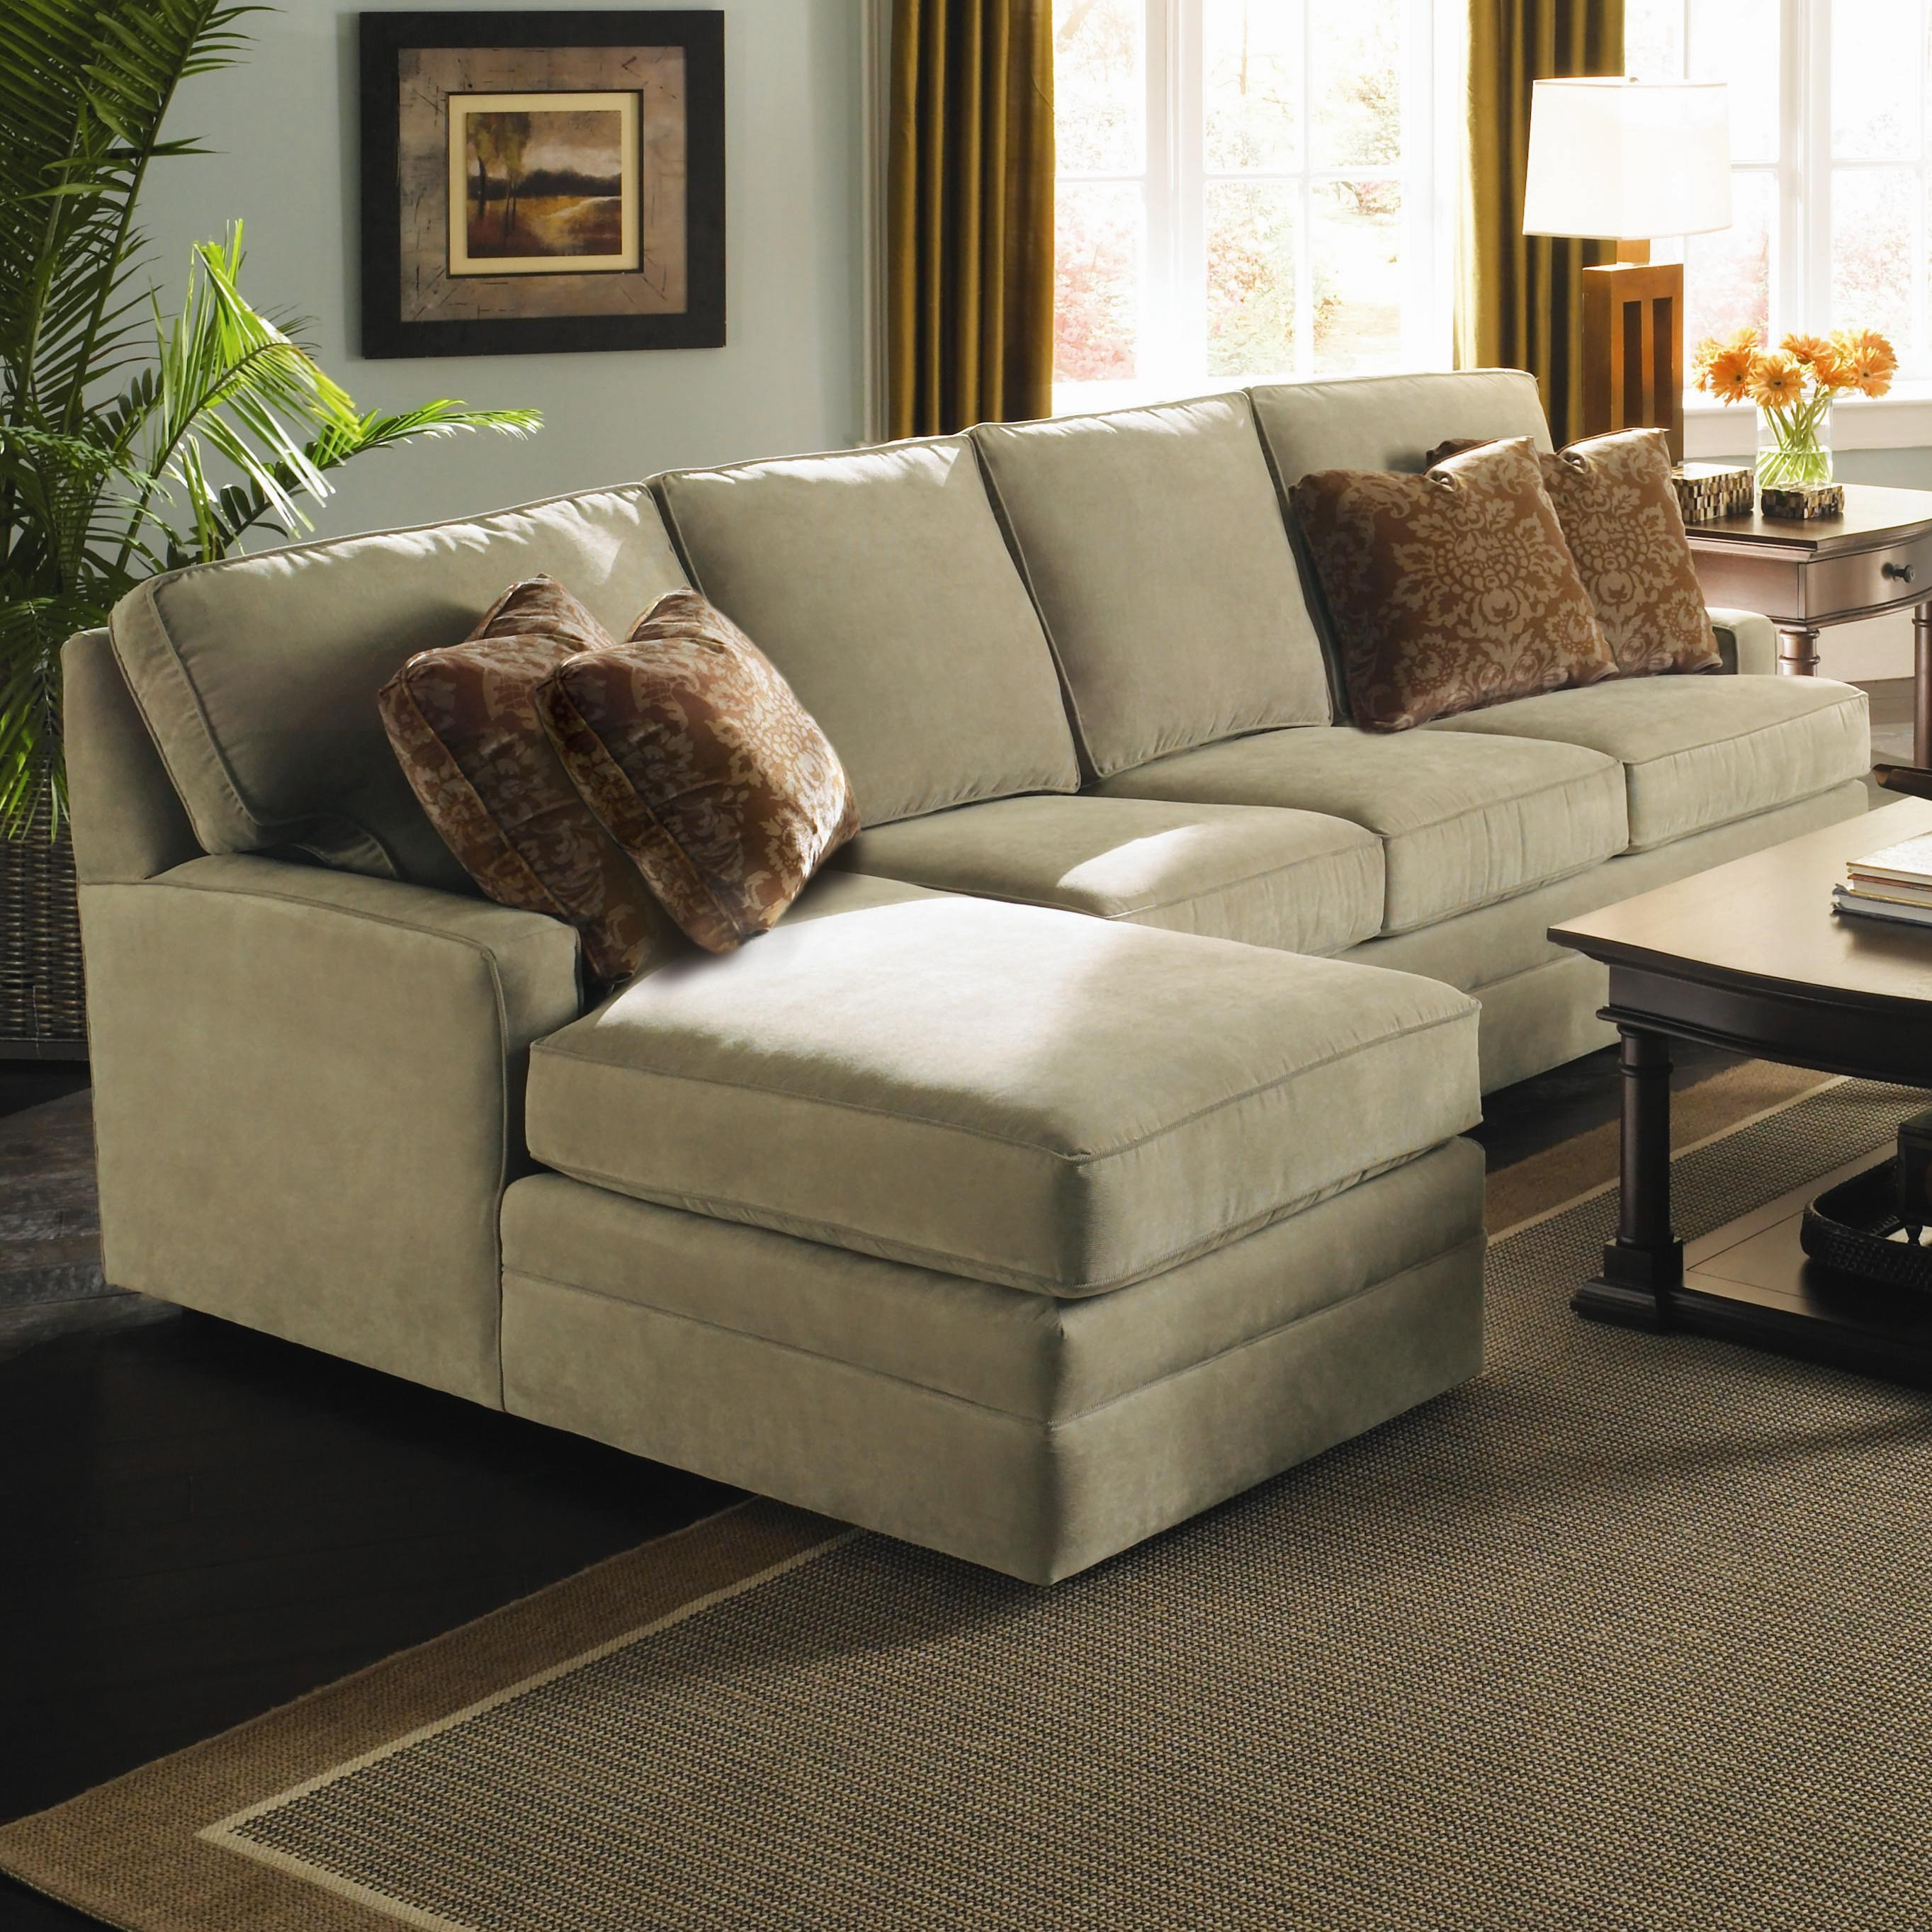 Kincaid Furniture Custom Select UpholsteryCustom 2 Piece Sectional ...